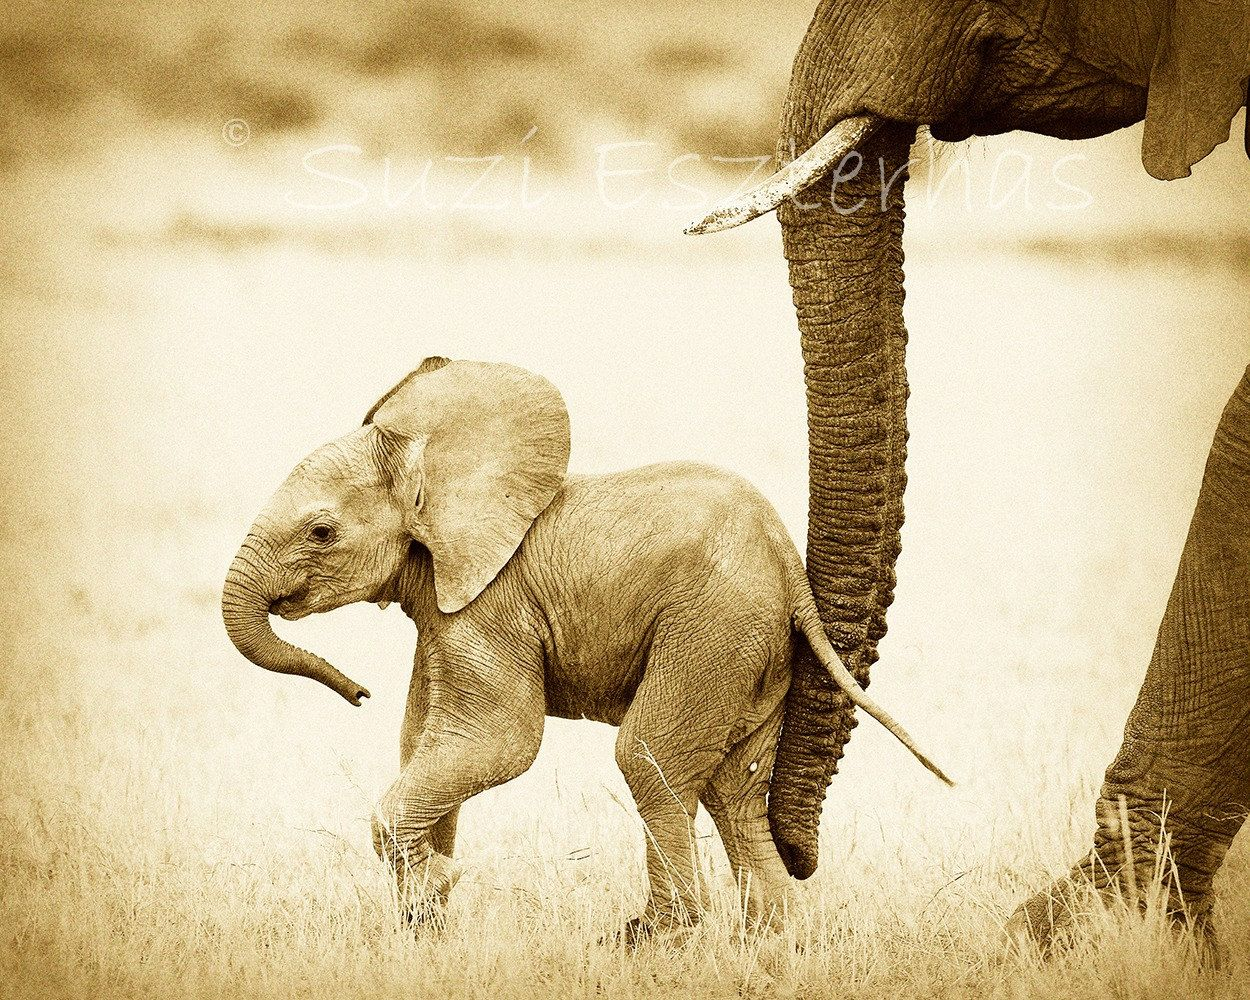 Vintage Baby Elephant Photo, African Safari, Baby Animals, Sepia ...